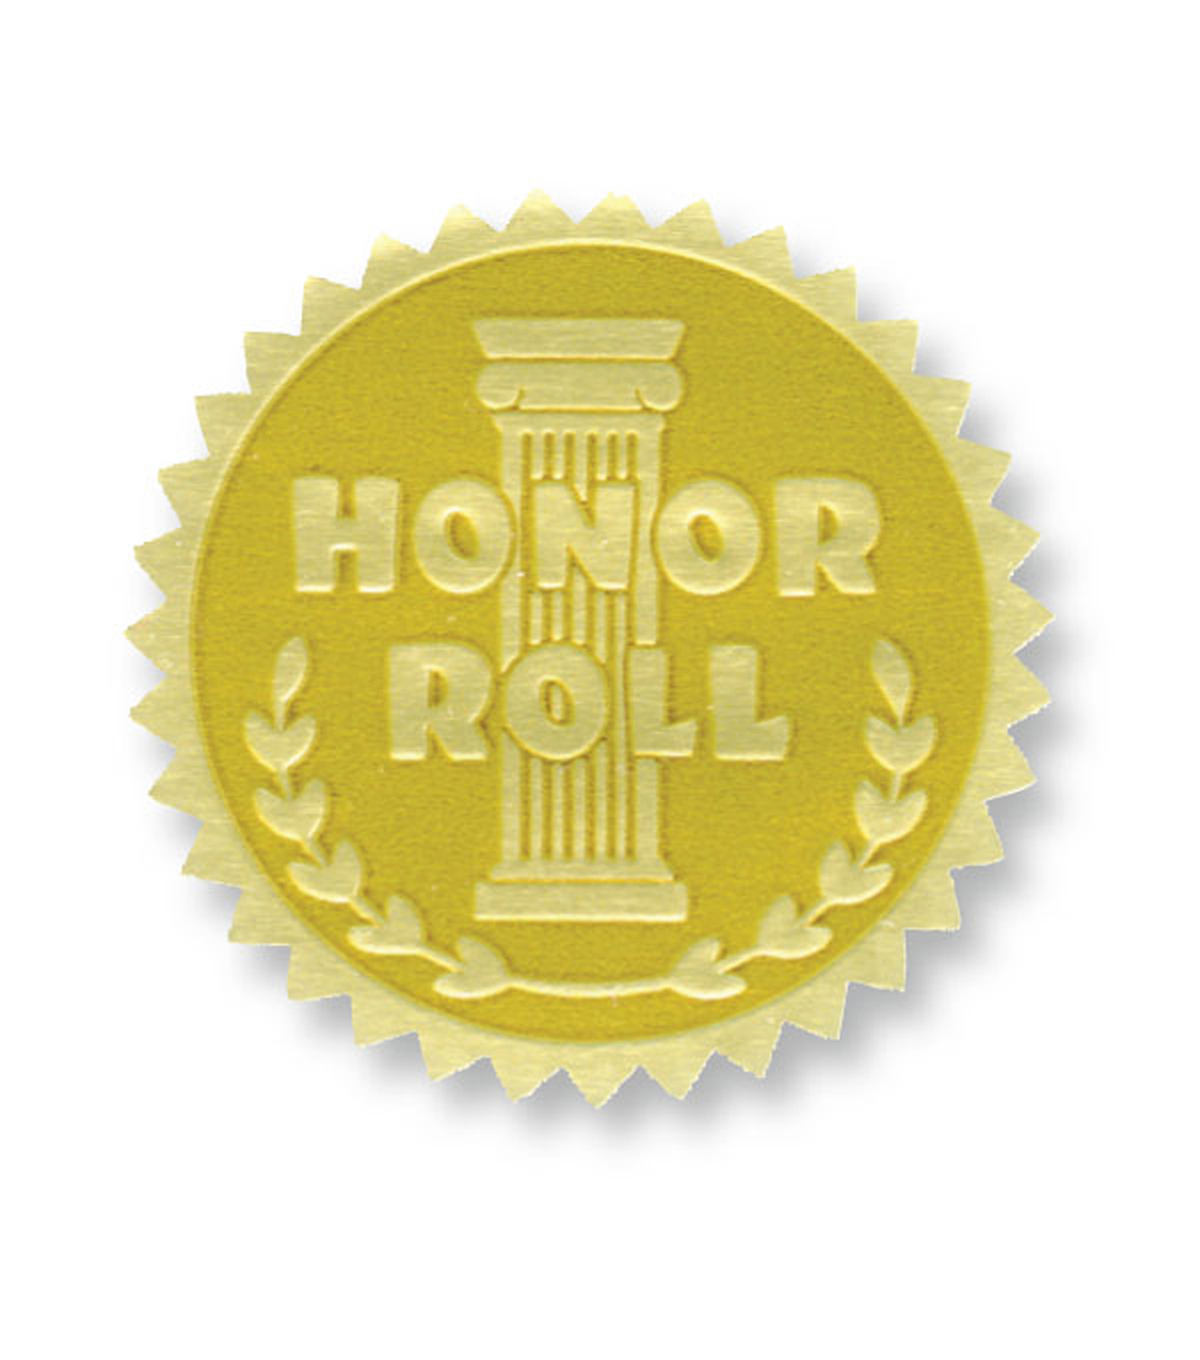 Hayes Gold Foil Embossed Seals, Honor Roll, 54 Per Pack, 3 Packs